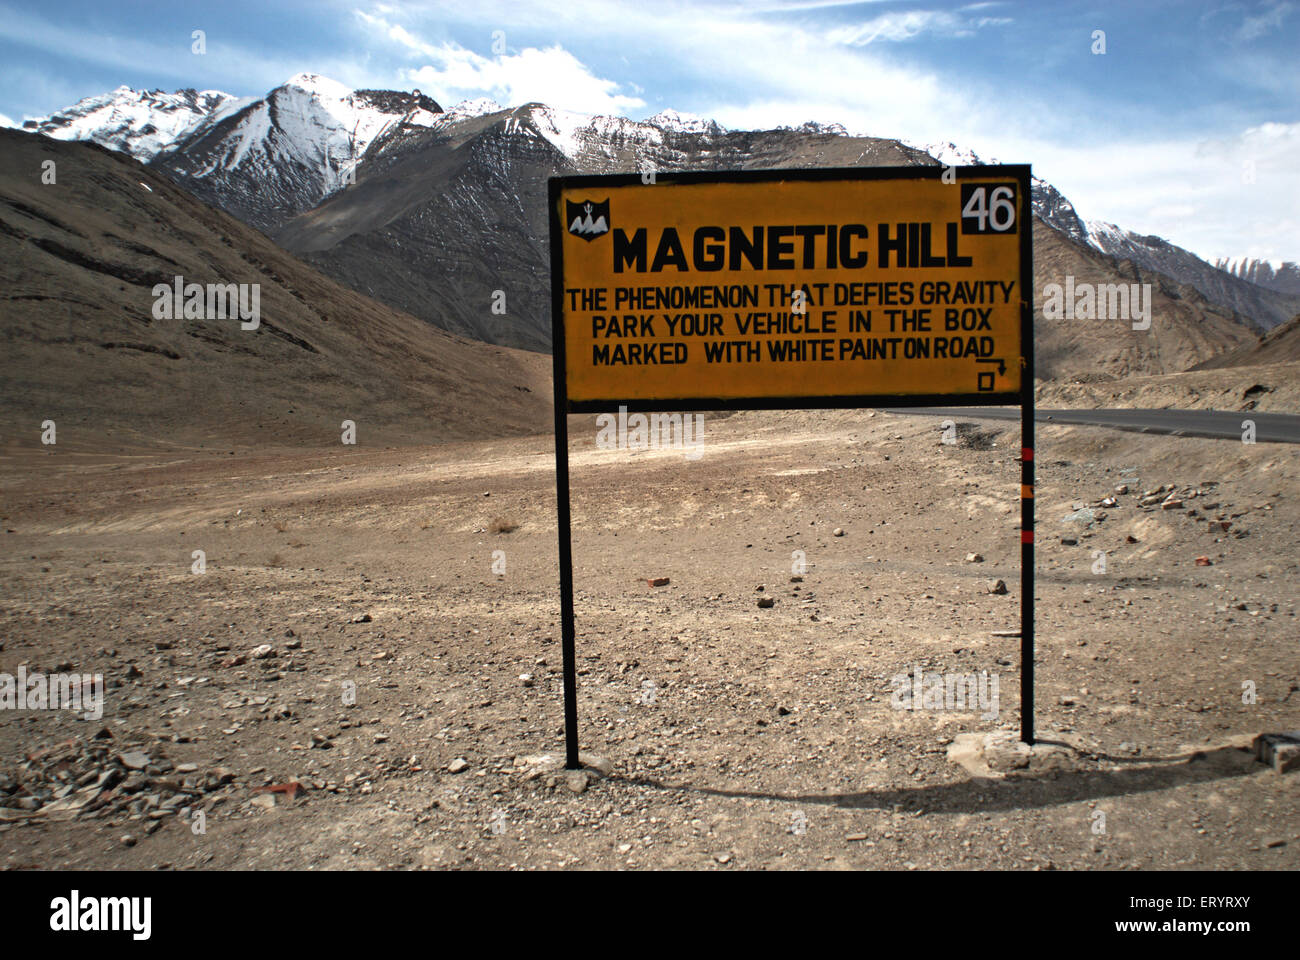 Signboard of magnetic hill ; Leh ; Ladakh ; Jammu and Kashmir ; India 9 April 2008 - Stock Image